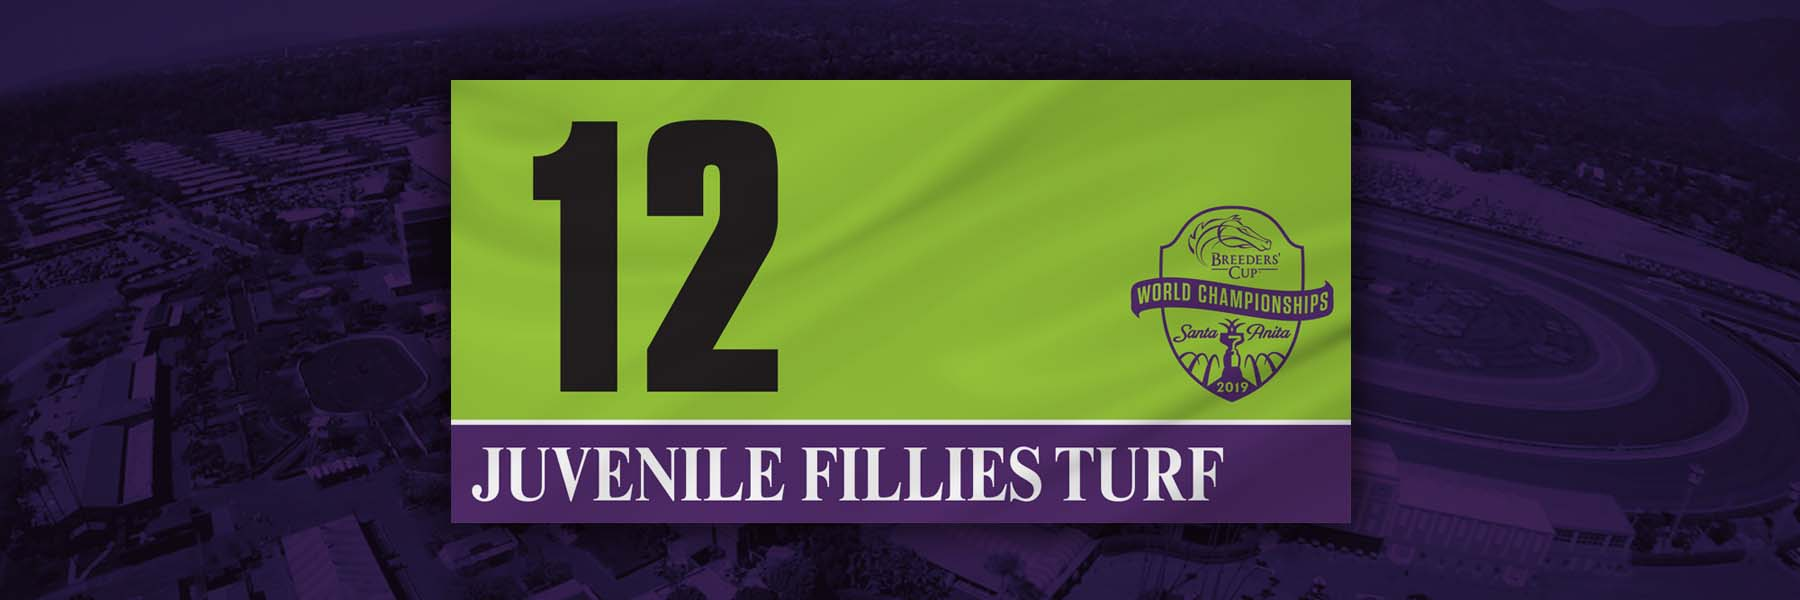 Breeders' Cup Juvenile Fillies Turf Analysis and Betting Strategies for November 1st, 2019